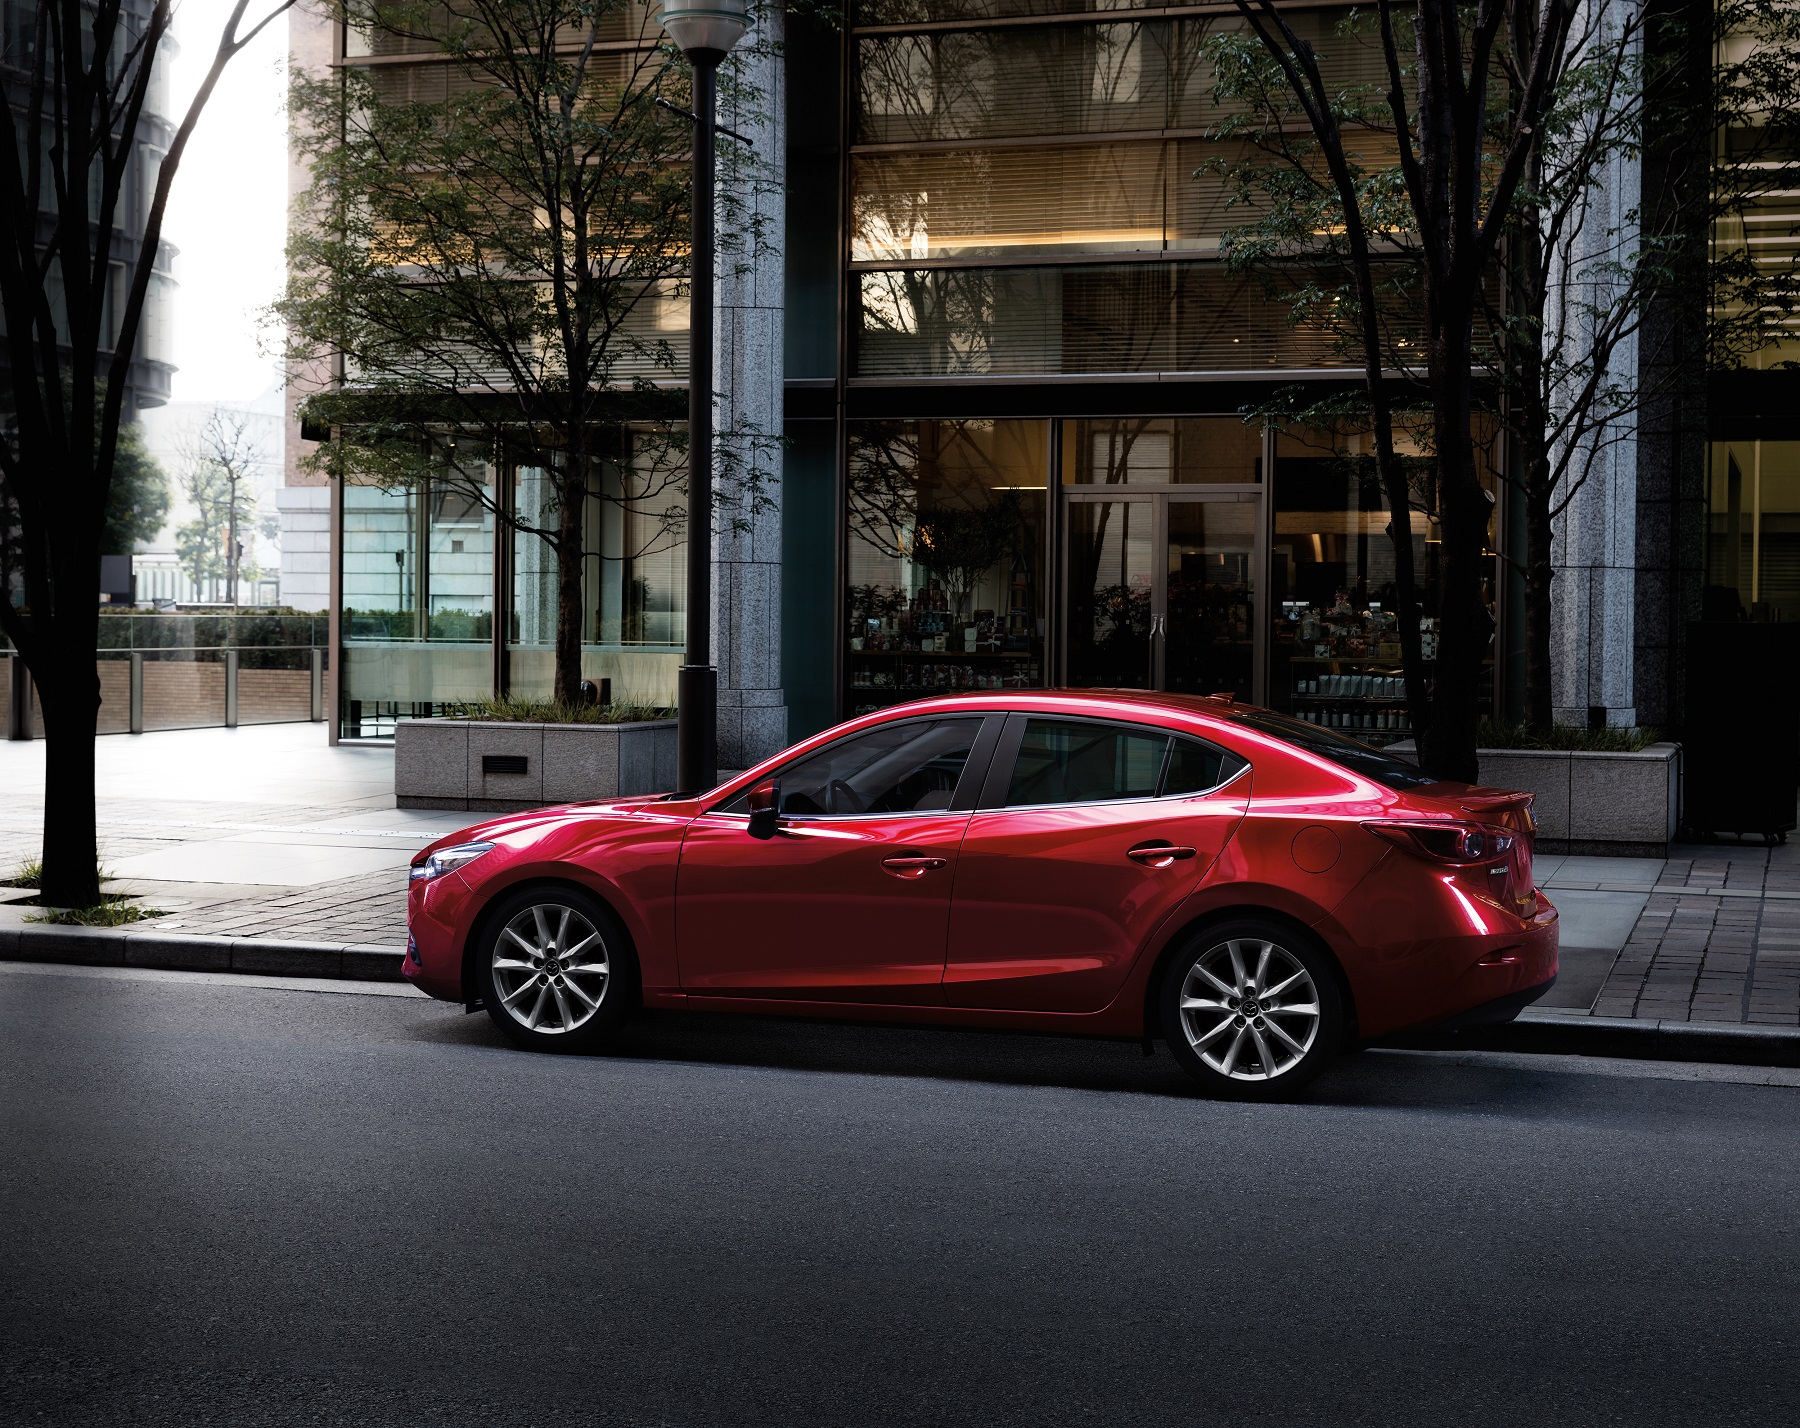 Manufacturer photo: Mazda3's combination of craftsmanship, quality and uncommonly good driving dynamics place it apart from its competition in the crowded compact segment